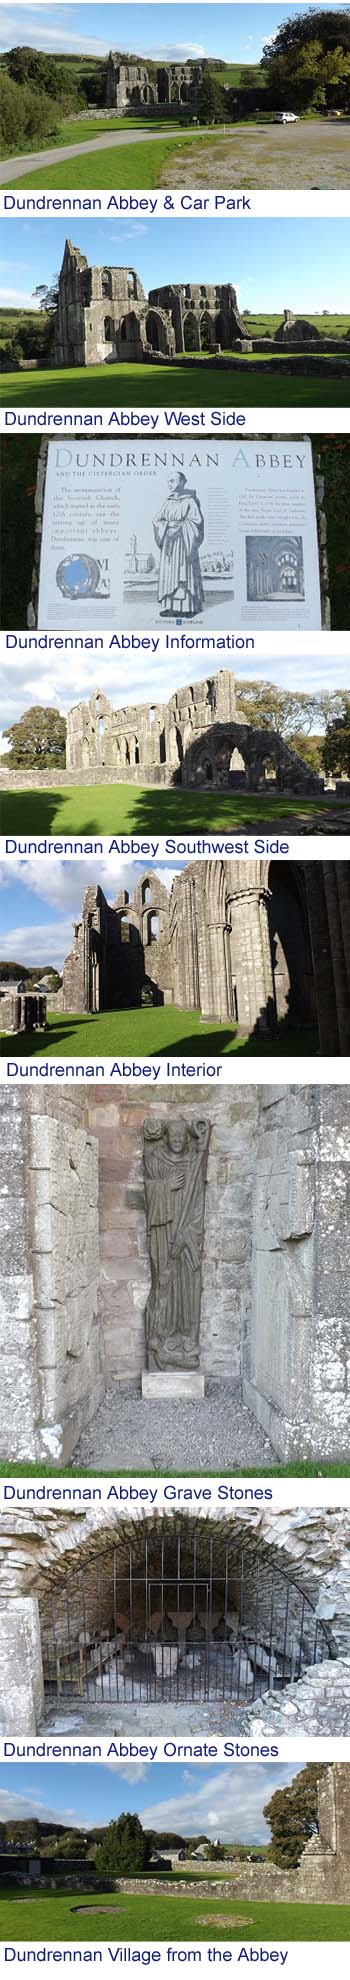 Dundrennan Abbey Images